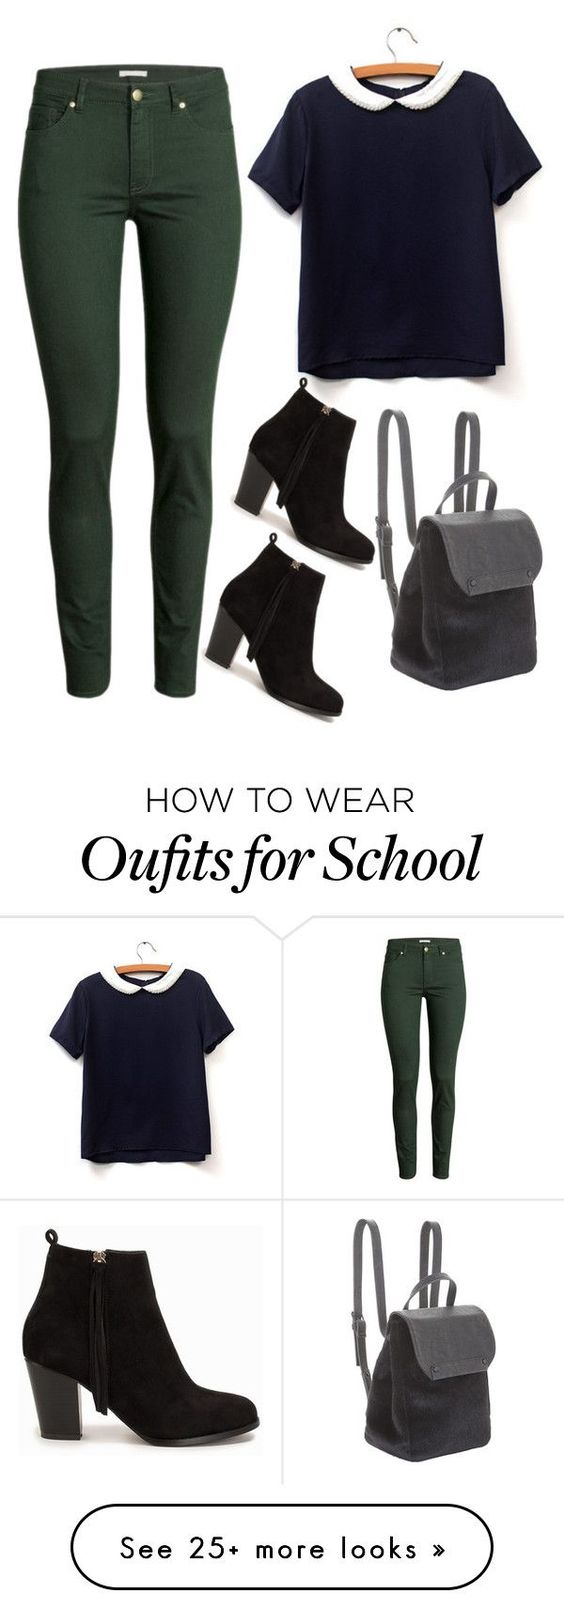 """""""school is my problem"""" by ziva-vrabac on Polyvore featuring H&M, BCBGeneration and Nly Shoes"""